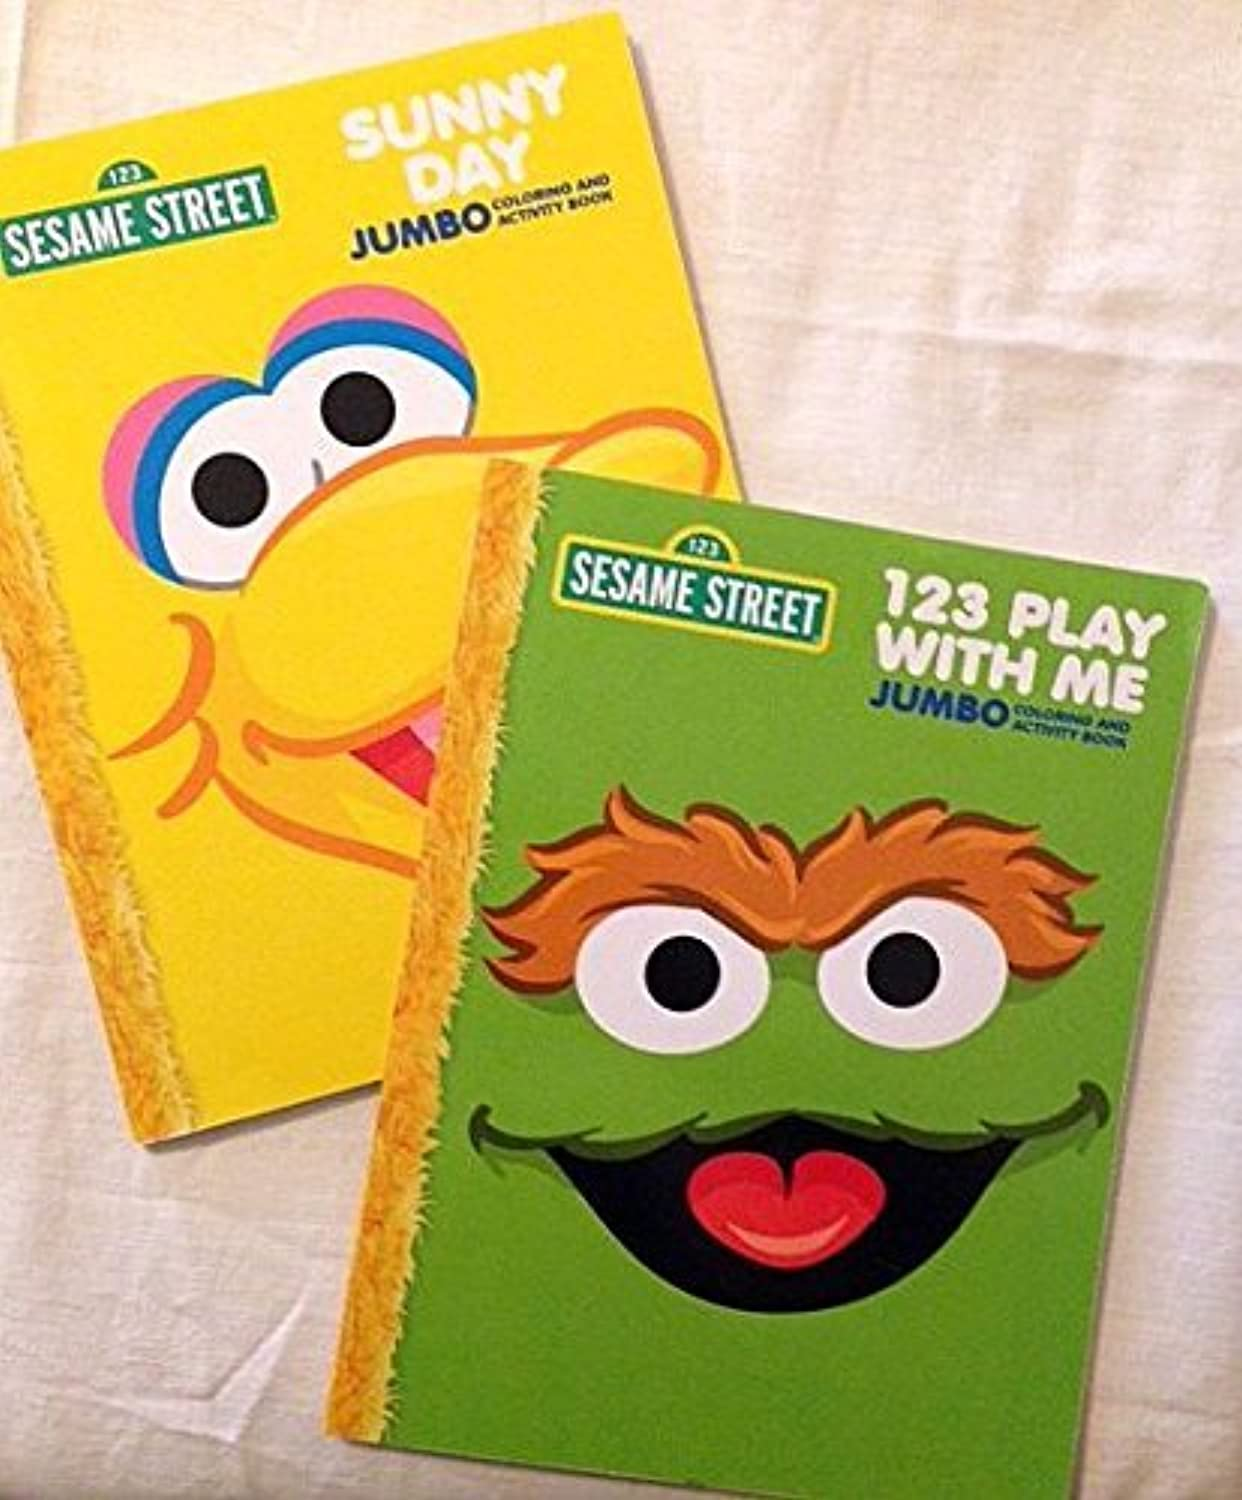 Sesame Street Coloring Activity Books - 96 Pages - 2 Pack - by Sesame Street [並行輸入品]